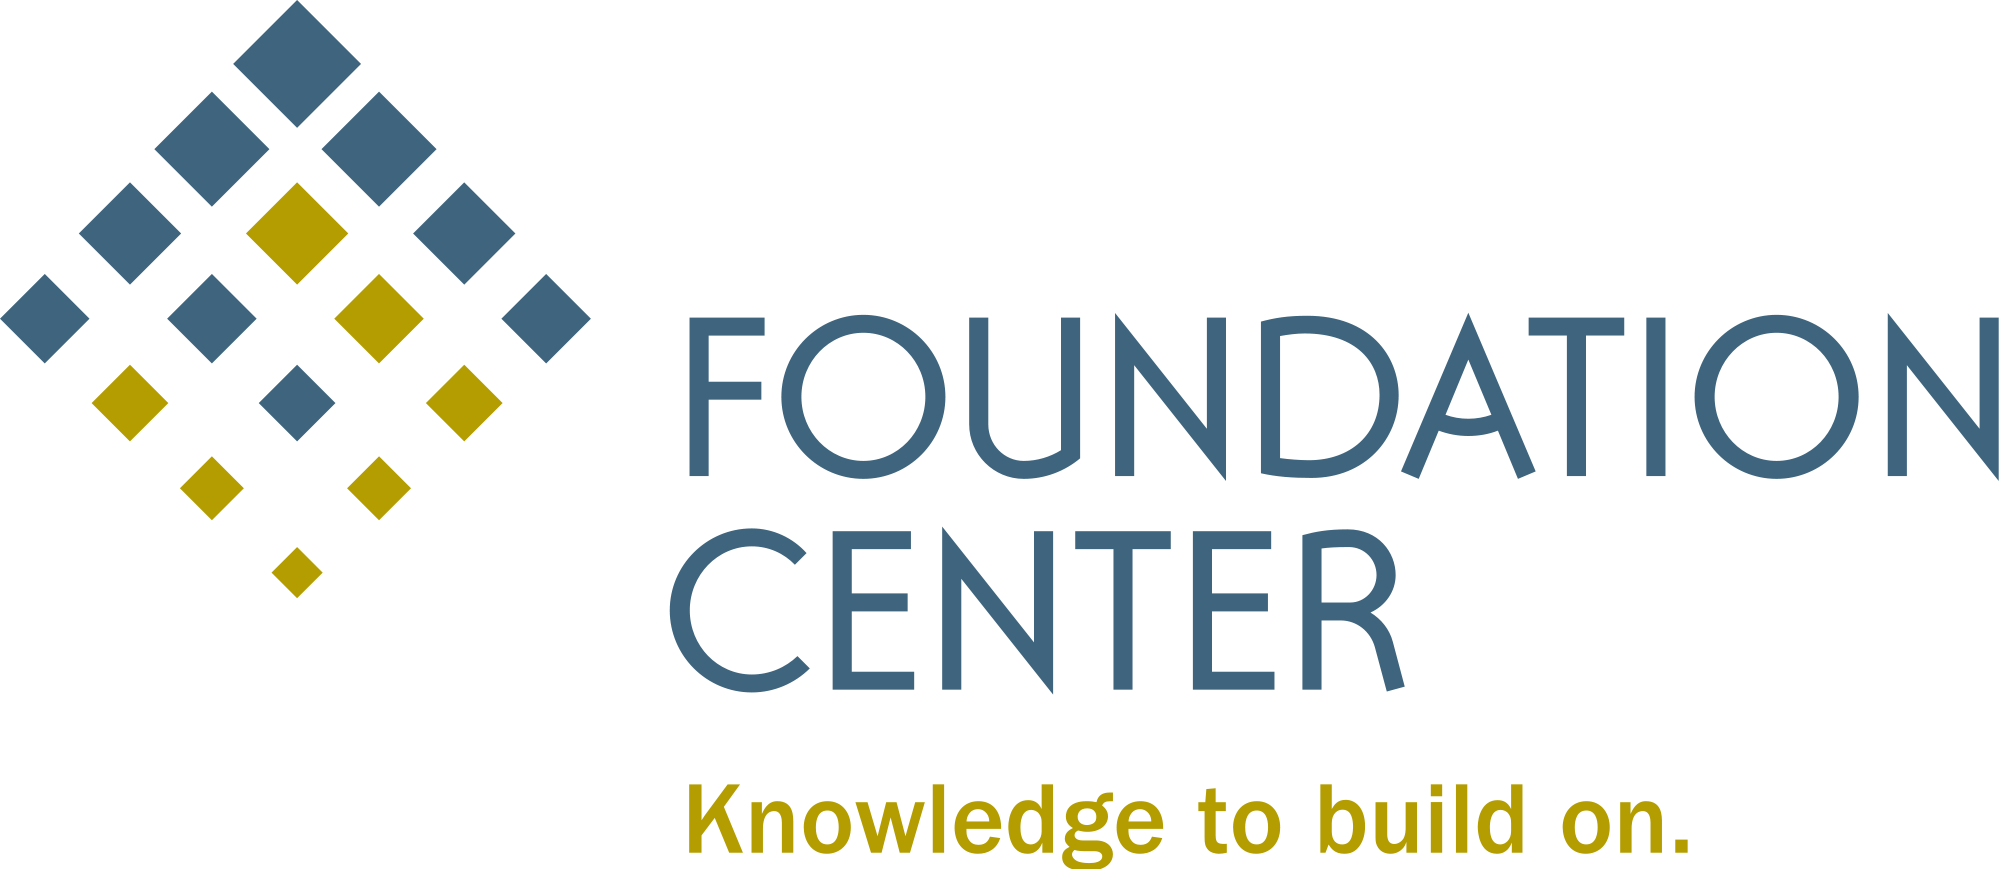 2000px-Foundation_center_logo.svg